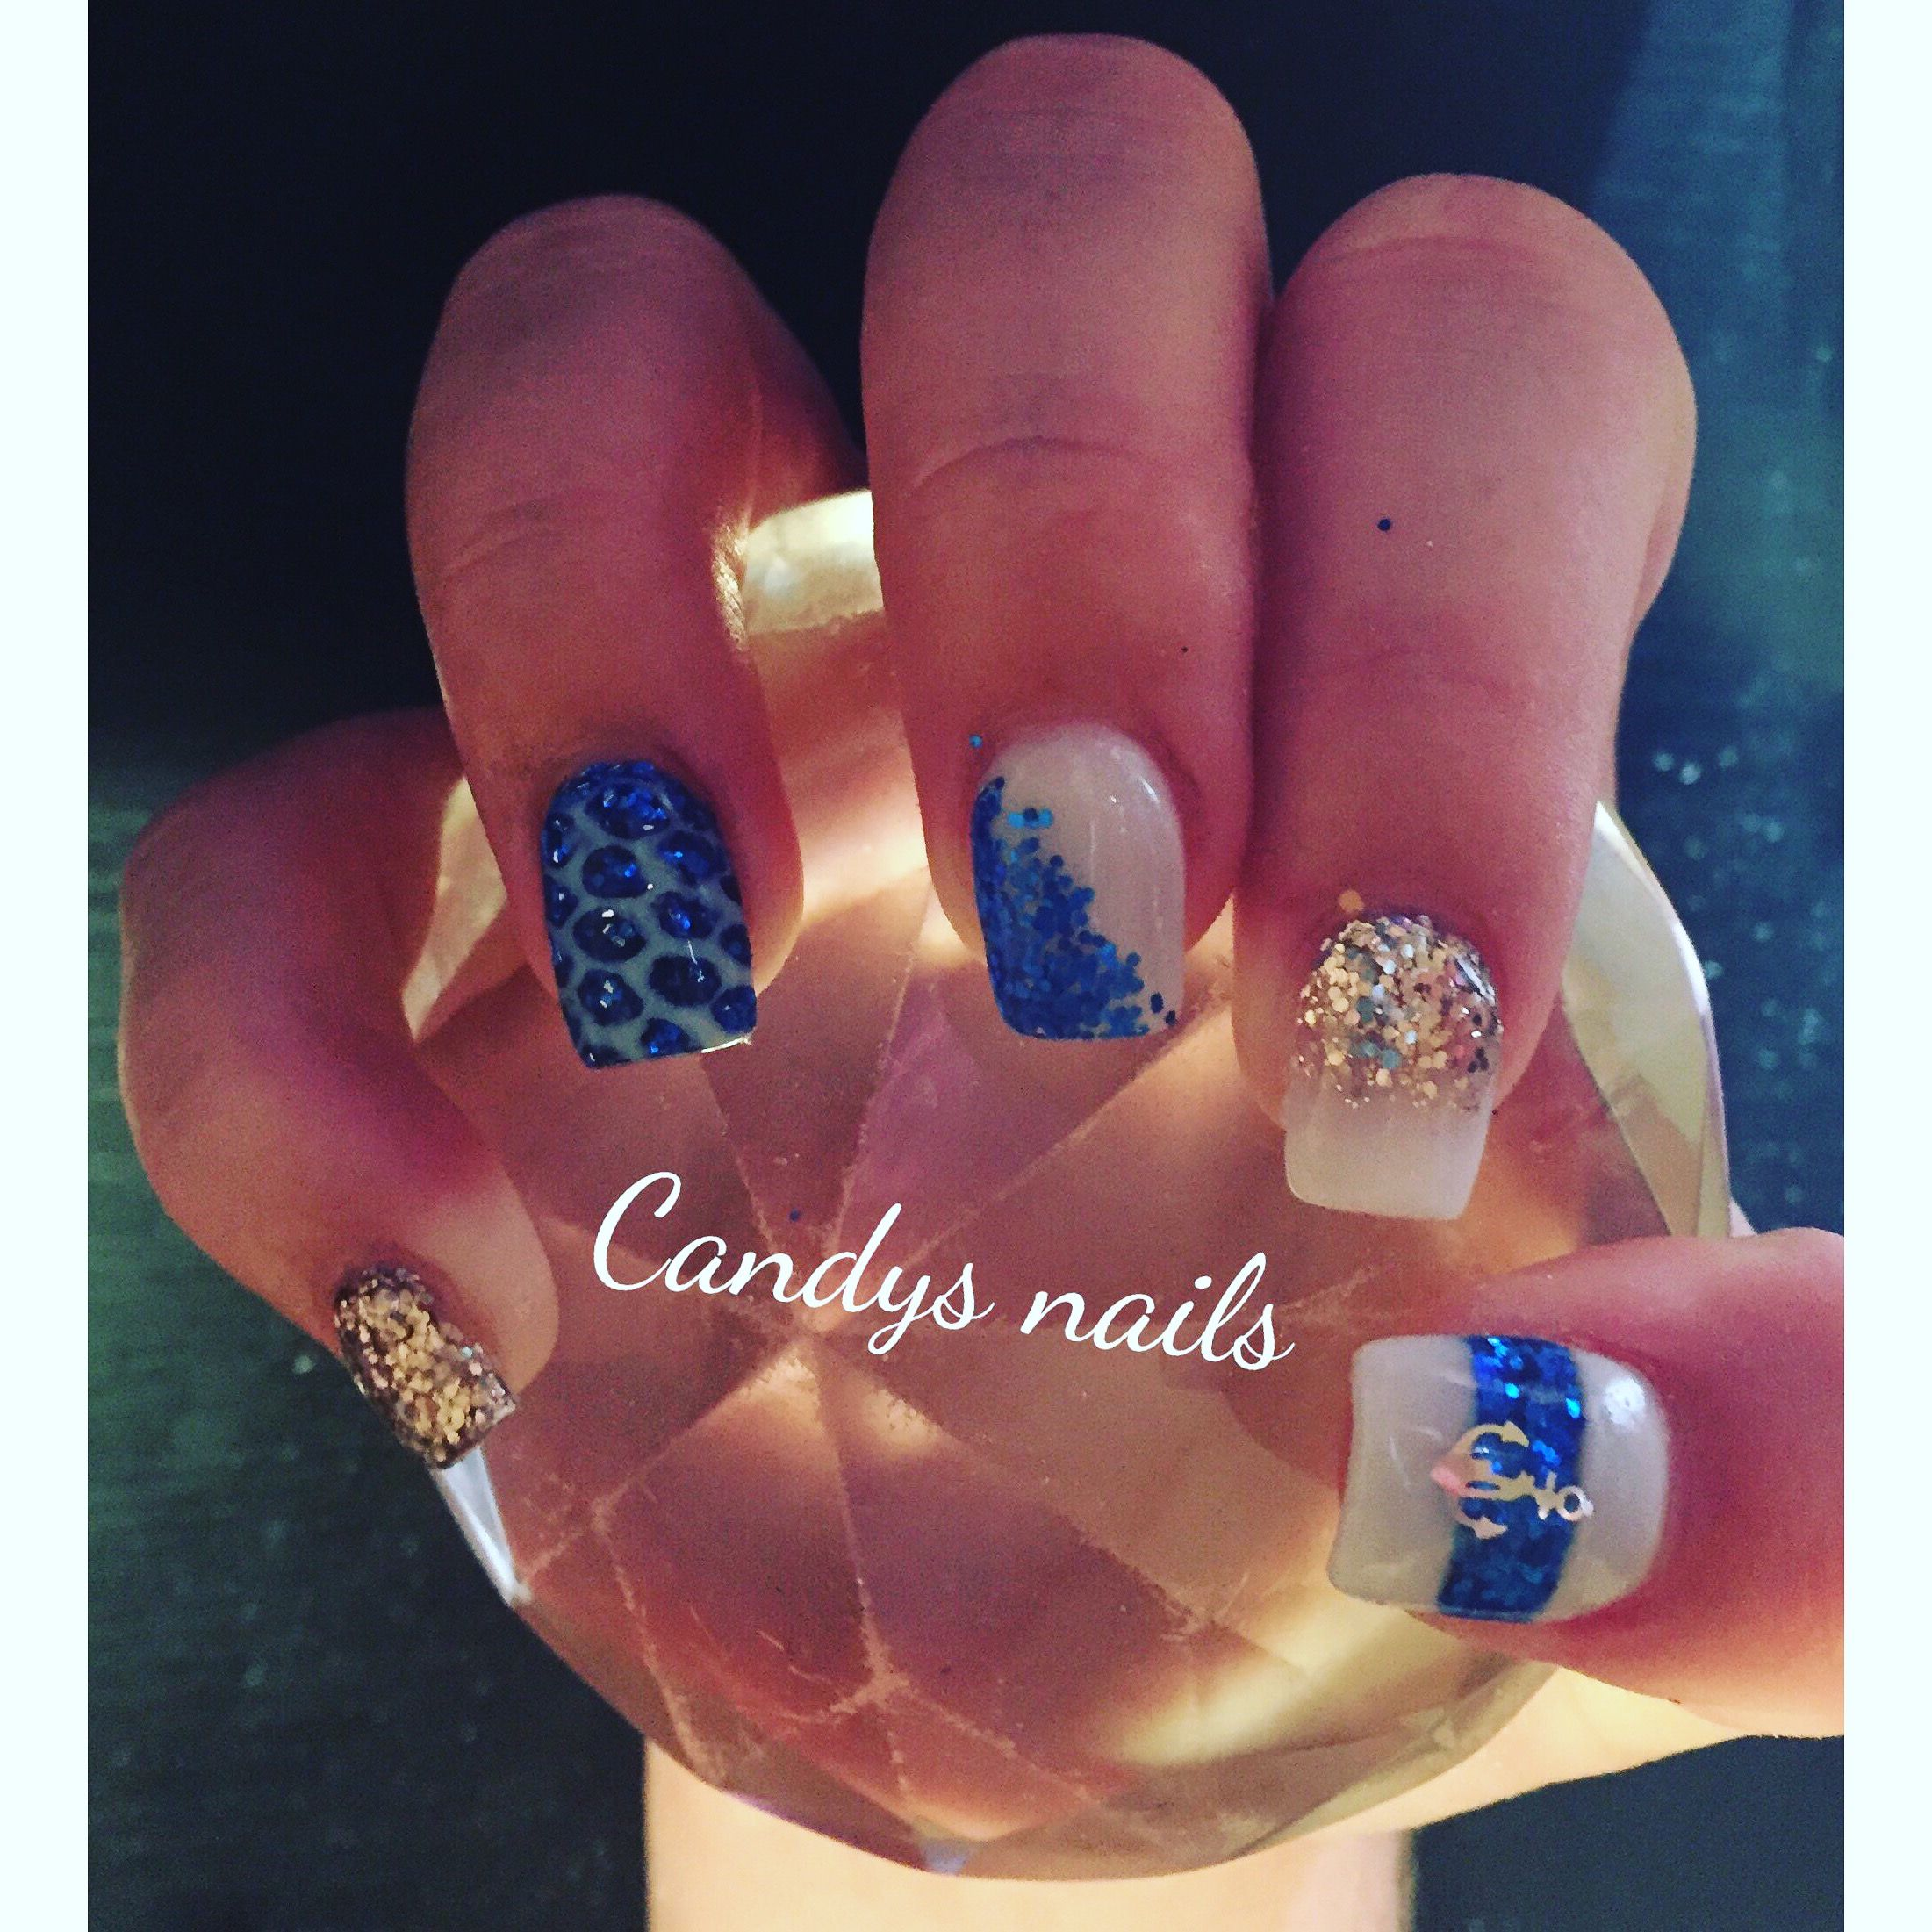 Mermaid acrylic nails with a anchor! | Candys Nails | Pinterest